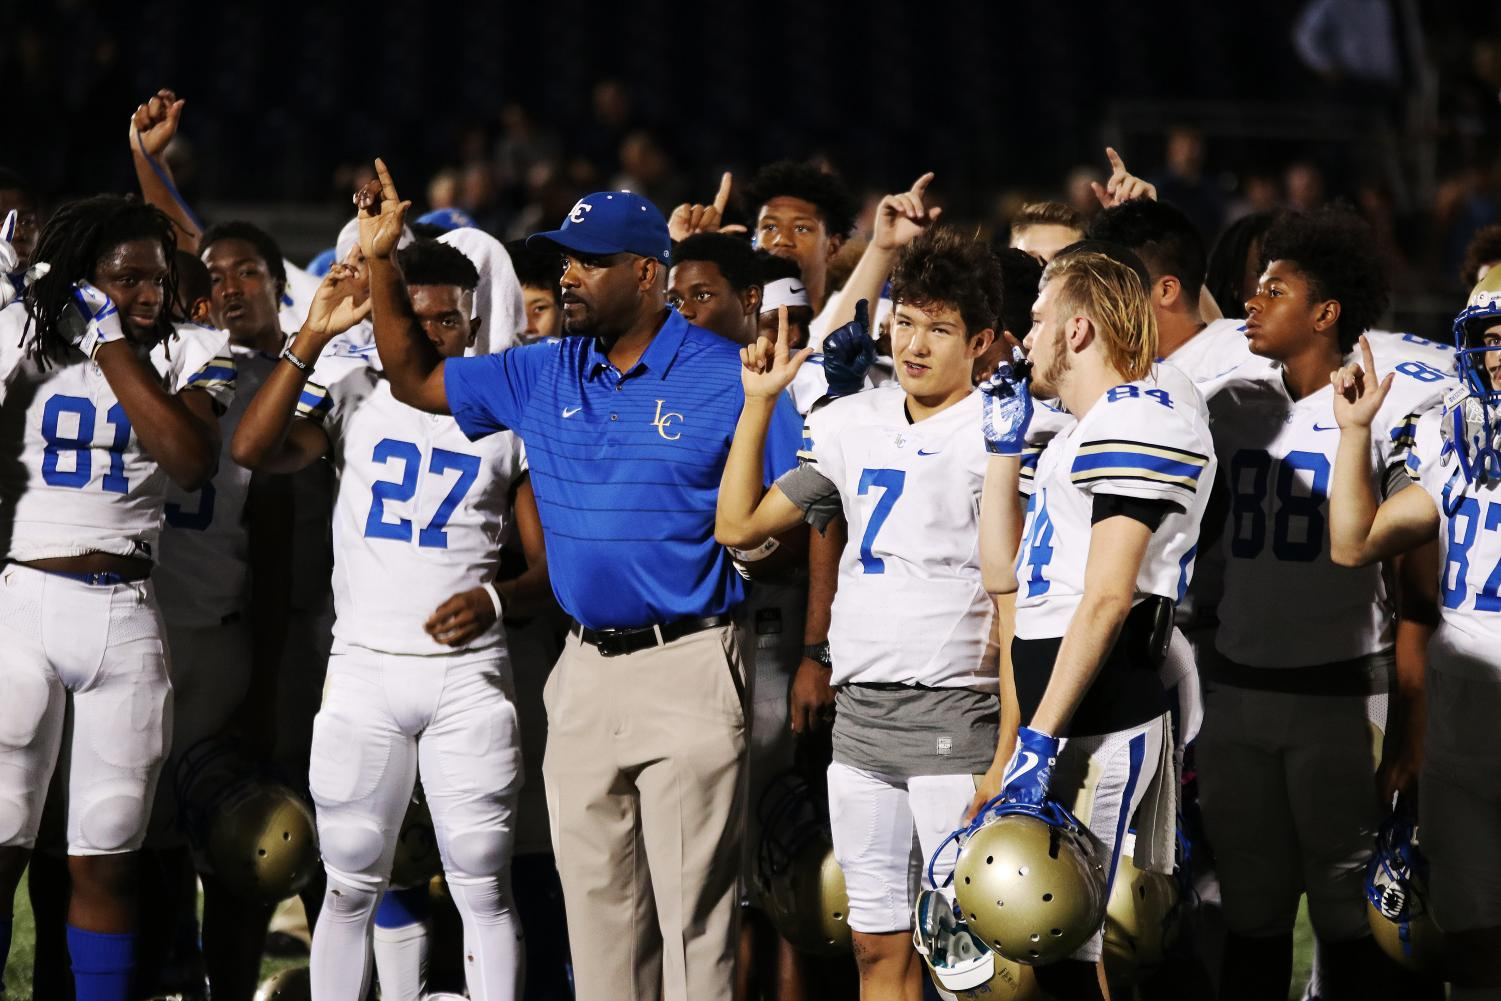 Lakeview vs. Jesuit: A Football Playoffs Photo Story